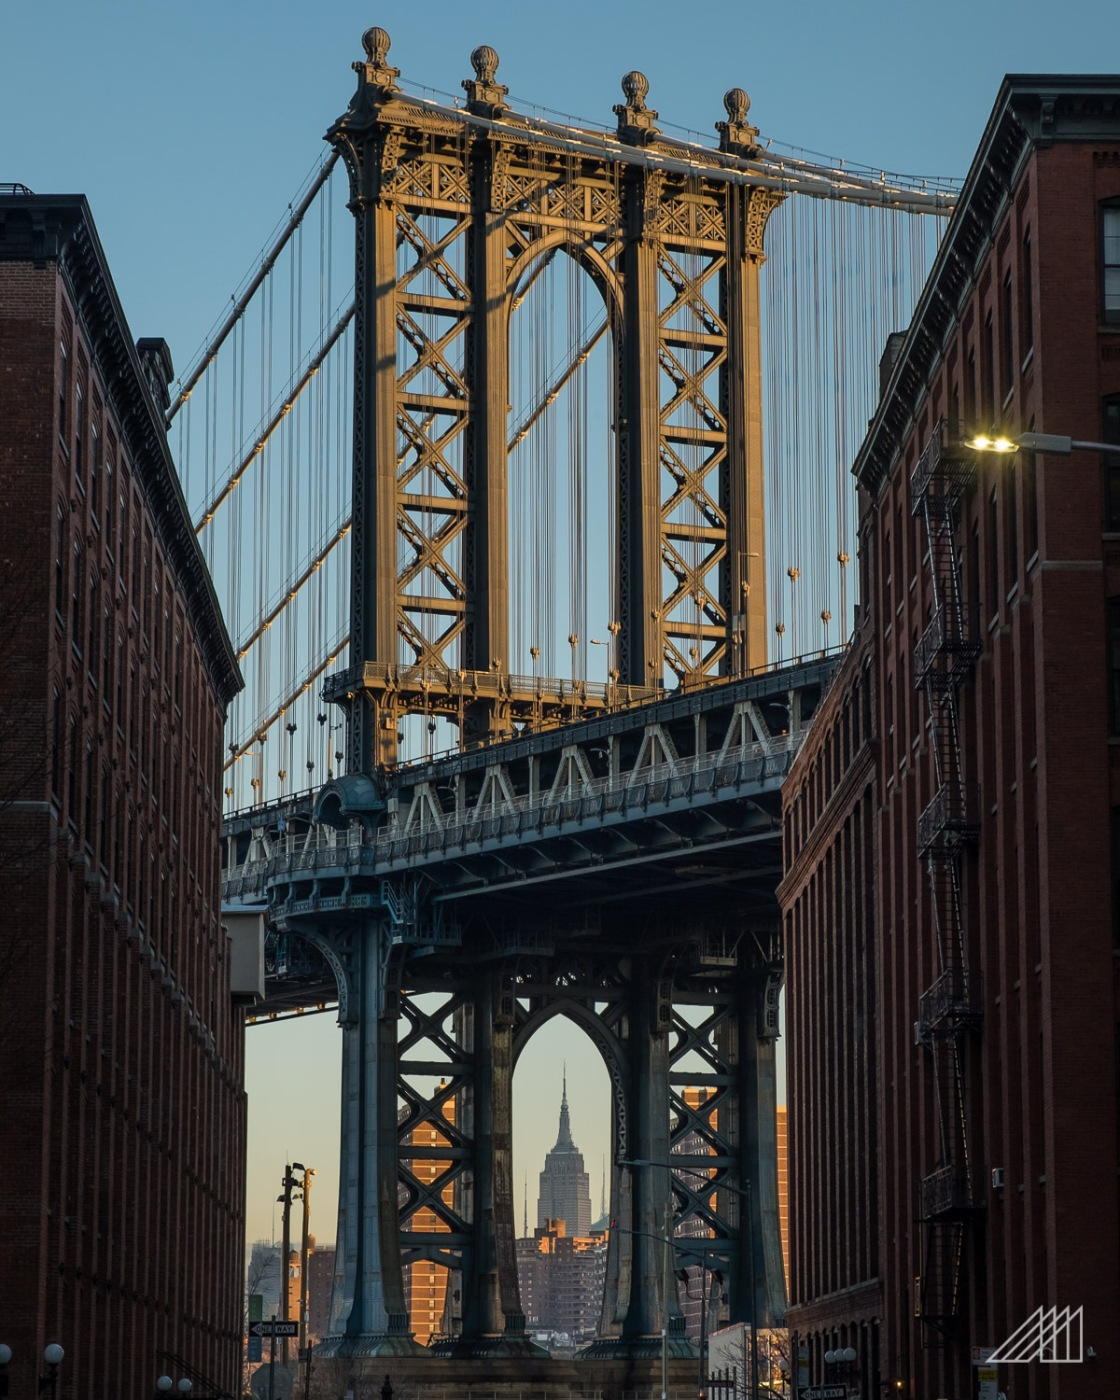 dumbo manhattan bridge brooklyn new york city nyc photography roaming ralph